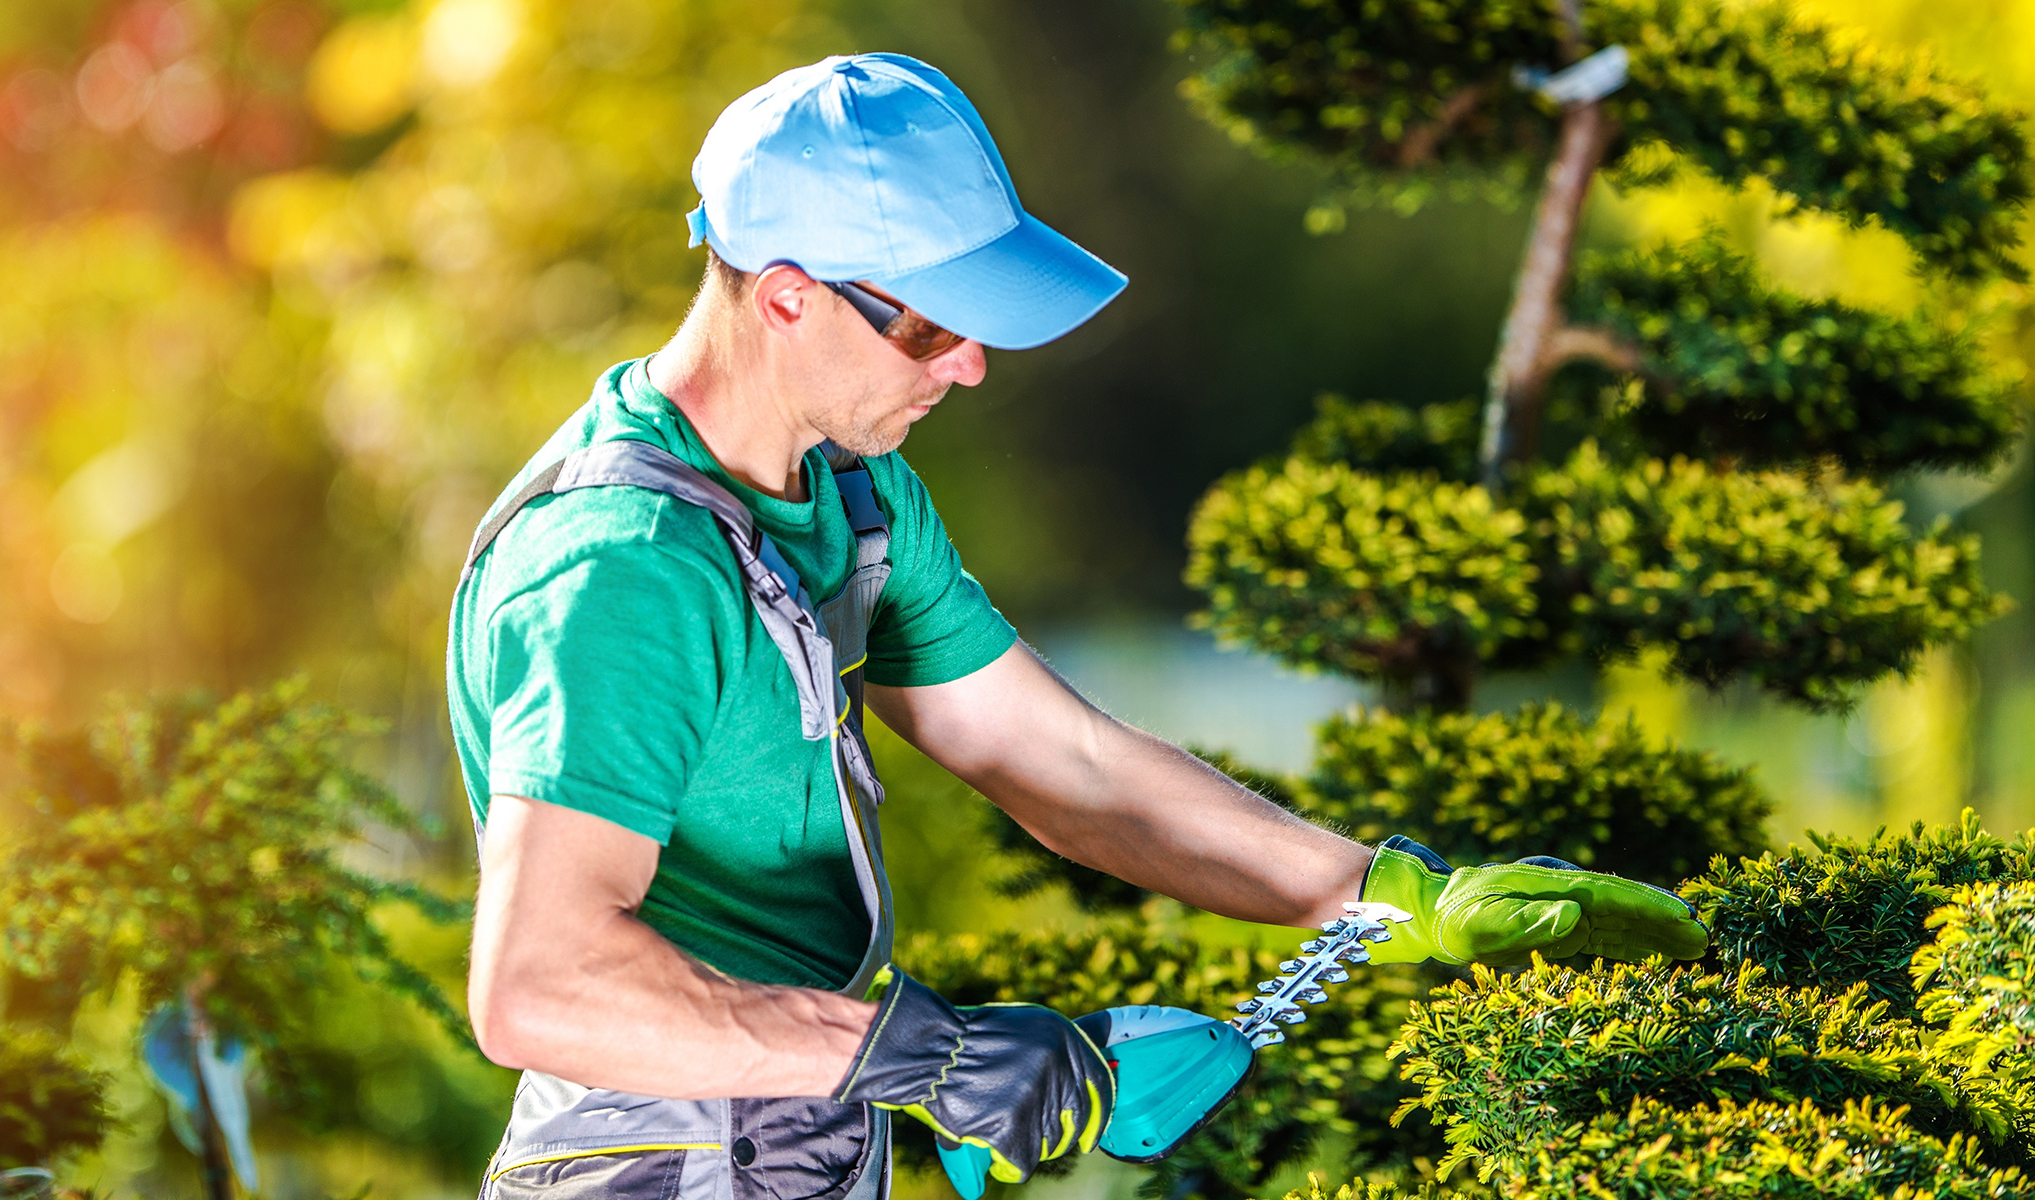 How Lawn and Landscape Professionals Can Support Their Customers During COVID-19